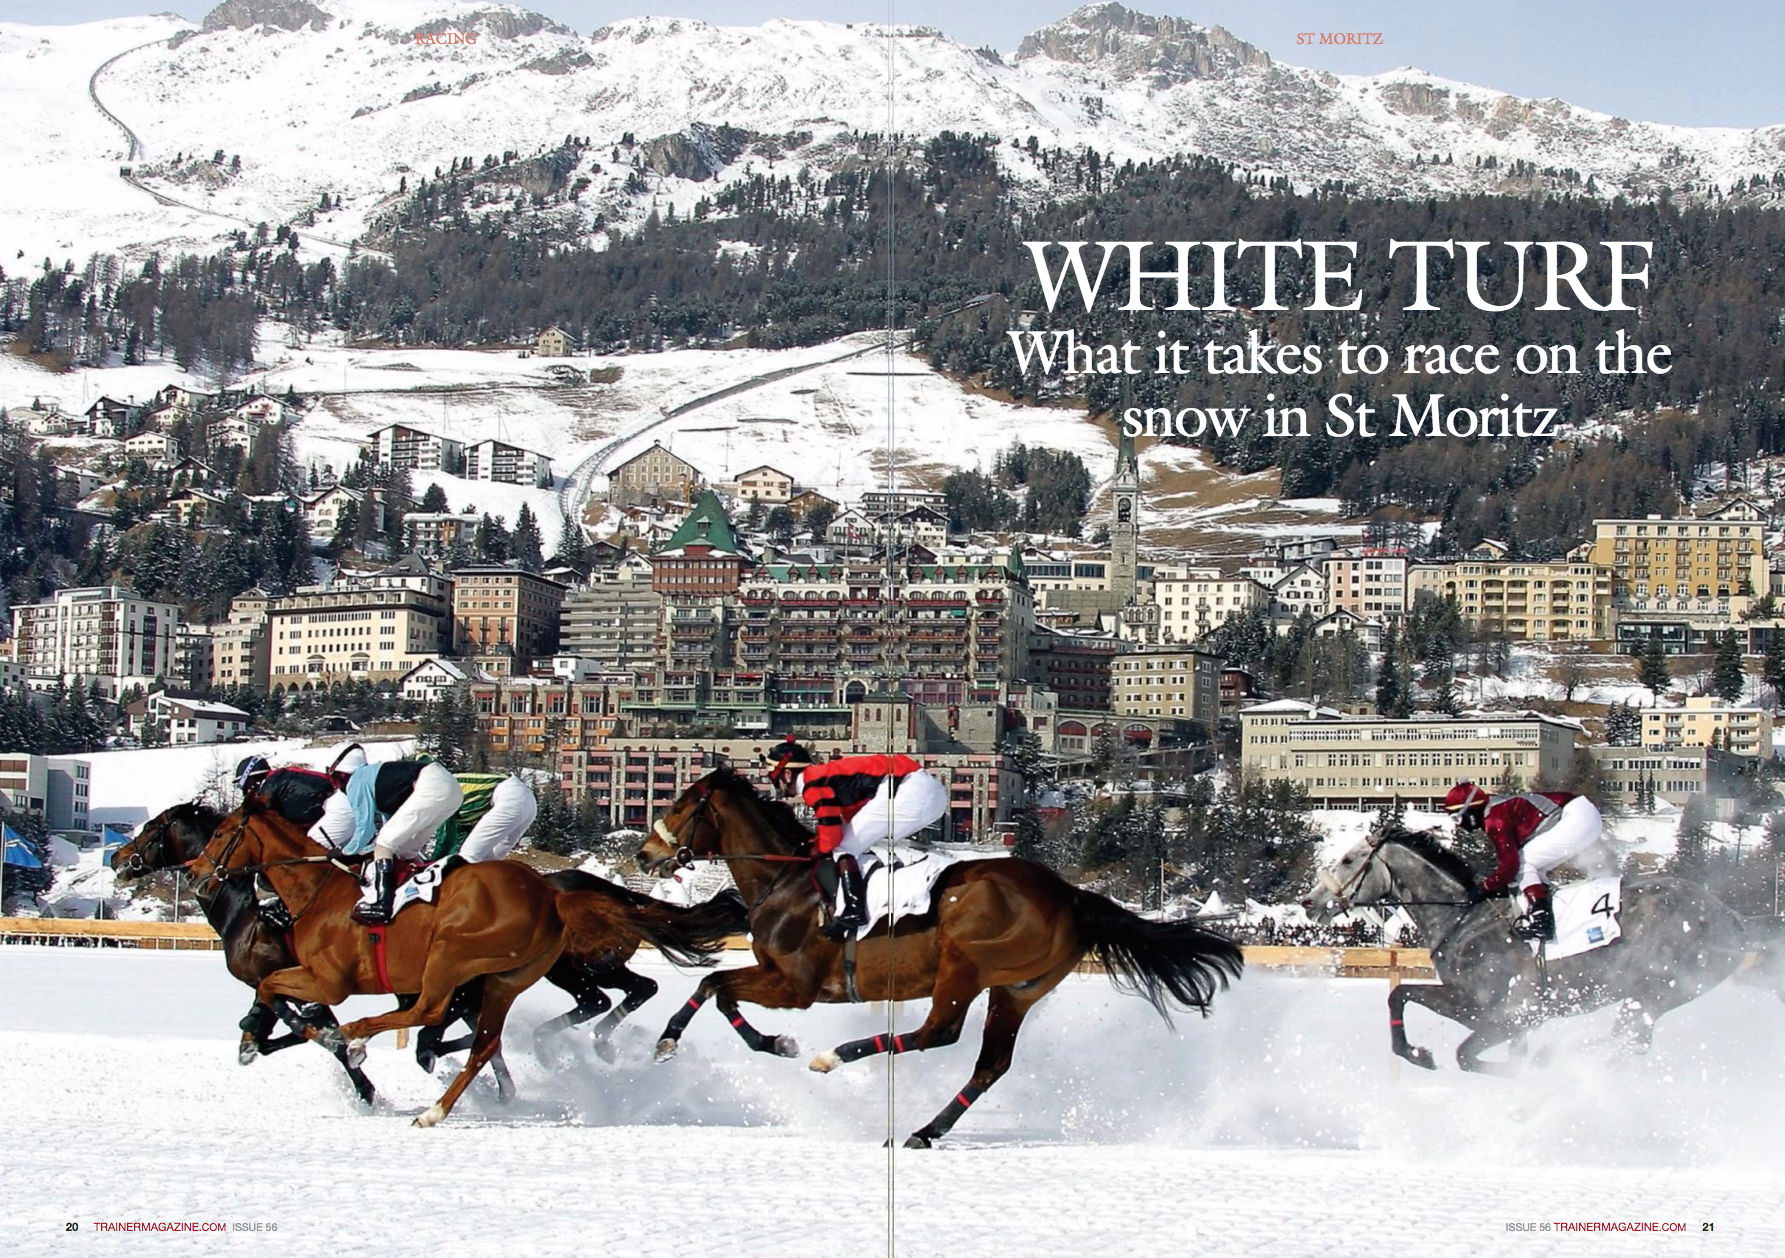 "WHITE TURF What it takes to race on the snow in St Moritz the most. The majority of jump jockeys, past and present, can probably be classed as adrenaline junkies on some level, so when one of the best of his generation – Jamie Osborne, now a successful trainer who sends runners to St Moritz – labels it as ""lunacy"" and ""absolutely crazy,"" it's clear that they must be exciting races. Johnston once went close to training the winner of one of the skijoring events with his useful middle-distance performer Luberon, and he describes them as ""undoubtedly the highlight of the action."" That action takes place not only in breathtaking surroundings, but also on an unusual surface for racing horses – pressed snow that is 50cm deep around an 1800 metre-long circuit that stretches to a width of 35 metres. To some, galloping horses at high speed on snow may sound dangerous, In the lineup of great racing nations, Switzerland would be well down the pecking order, but on a list of great racing sights, the action on the ""White Turf"" of St Moritz would be vying for a position close to the top. WORDS: CHRIS DIXON PHOTOS: SHUTTERSTOCK, CAROLINE NORRIS NeSTLeD away in the landscape of the Upper engadine Valley more than 1800m above sea level is the unique racing circuit of St Moritz – a frozen lake that hosts three meetings a year each February. ""It's a tremendous spectacle, the town is beautiful, the skiing is fantastic, and the après-race is great fun,"" comments Mark Johnston, one of Britain's leading trainers. Johnston has made a visit to the Swiss track in all bar one of the last 16 years. It's a spectacle that has been promoted as the 'White Turf' since the early 1990s, but competition has taken place here for over a century. In 1928, St Moritz hosted the second-ever Winter Olympic Games, but decades before that, horses had galloped across the frozen lake in a ""skijoring"" race (horses towing riders on skis) from St Moritz to Chamfer and back – a near 10km journey. Not long after the inception of this race, the venue was playing host to a full six-race card of skijoring and trotting events, and in 1911 the first Flat races were added to the programme. Nowadays, the cards are dominated by Flat races, but for many of the 35,000 or so visitors that are attracted to this luxury alpine resort for the racing, the skijoring events will still be anticipated but Johnston observes, ""There is nothing wrong with the principle of running on snow and you don't see the horses slipping and sliding around,"" before adding, ""They used to run in very heavy shoes with large toe and heel grabs, but now most wear standard American toe grab shoes that are much lighter and perfectly adequate."" Despite being compressed, the surface is not a fast one. Leading British-based rider Luke Morris, who has taken time out of his seemingly non-stop schedule of banging in winners on the sand-based surfaces of the UK all-weather tracks during the winter months to try his hand on the snow, describes it as ""quite testing,"" but the track is ""nice and level with few excuses."" For all that excuses may be thin on the ground, the same can be said of the ice at times, so be prepared for a changing surface – and potentially changing race distances – if heading to St Moritz. Recent years have seen some instances of warmerthan-average temperatures affecting the track and making parts of the circuit unfit for racing, resulting in race distances having been slashed at some meetings. It's proved a source of frustration for some trainers, with both Osborne and Johnston expressing dissatisfaction with conditions on occasions in recent years. Johnston in particular has questioned whether the management of the track is as good as it once was, commenting, ""The condition of the track has been appalling at times."" With horses travelling from around europe to race there, doubts about the suitability of the track and conditions are sure to be a worry for some. Leading German trainer Christian von der Recke has been sending horses to the meetings on the 'White Turf' for 20 years and admits that ""the surface is changing all the time, and you never know what to expect, it can be deep, fi rm, or loose."" But rather than focusing on the obstacles that may pose, he focuses on the positives: ""If the horse gets beat, then as a trainer you can blame the surface and as an owner you will leave with the same horse and have had a great time,"" he notes – hinting at what for many is the real attraction of taking in the racing at St Moritz. Forming part of the 'Top events of Switzerland' and described on its own website (www.whiteturf.ch) as offering ""a unique, exclusive, top-class event with exciting horseracing, gourmet catering, lively music and inspiring art exhibitions,"" clearly St Moritz has plenty to offer. So much so that for some who have tasted its delights in recent times, the draw to go back has resulted in a somewhat expensive sales season in the UK. Ian Barratt runs the Melbourne 10 syndicate who have horses in training with Jamie Osborne, and having gone very close with Boomerang Bob last season, had his appetite for winners on the snow whetted to the extent that he was busy buying at Newmarket in October with St Moritz in February in mind. His aim is to win the feature Longines Grosser Prix Von St Moritz, but with fi ve new purchases added to some already suitable types, he RACING ""You need a horse that has the pace to hold a position but also stays well and is very tough Jamie Osborne "" • Aids digestion • Proven to help prevent gastric ulceration • Elevates digestive upset • Maximise performance in race horses • Aids condition Gastric settler is scientifically formulated to help maintain and optimise gastric health in horses. Particularly those under athletic stress and high cereal and starch diets, making them susceptible to Gastric ulcers and performance reducing digestive upset. A WINNING FORMULA TO NUTRITIONAL EXCELLENCE For more information please call Sam Evans: +44 (0)7951 046623 Hickstead Horse Feeds: +44 (0)845 025 0444 or visit www.hicksteadhorsefeeds.co.uk HicksteadHorseFeeds 24 TRAINERMAGAZINE.COM ISSUE 56 has assembled a strong team of horses to compete in the races on the supporting card as well. Barratt has had runners around europe, including a winner on the beach at Laytown, and his enthusiasm for the racing at St Moritz is palpable as he advises ""If you want a good fun experience as an owner then it's the place to go."" Like any track or surface, not all horses will act on the snow at St Moritz and a certain type of horse is required for the test, so it's to be hoped that when selecting his horses at the sales Barratt was listening to his trainer as Osborne's view that ""the track has lots of kickback and they probably go too quick early, so you need a horse that has the pace to hold a position but also stays well and is very tough"" is one echoed by other top handlers as well. Von der Recke has won all the major races staged on the frozen lake in recent years and says, ""You need a horse that can race handy, and they must be a fi ghter to go through the kickback,"" while Mark Johnston notes, ""They need to stay the trip well and be able to face or stay out of the kickback, which can be extreme."" Luke Morris believes that ""a horse who can travel and has a good cruising speed"" is important and advises trainers to have their horses ""very fi t"" in readiness for a race on the snow. Osborne also noted high fi tness levels being required for races he describes as ""attritional and a real test."" Armed with the right horses, Osborne, Barratt, and his fellow members of the Melbourne 10 will hopefully taste success on the track to supplement the expense of their entertainment off it. With in excess of 280,000 Swiss Francs (£225,000) in prize money up for grabs across the 12 thoroughbred Flat races that take place across the three meetings, the funds are certainly there to be won. The feature race, the Longines Grosser Preis Von St. Moritz, over 10f, offers a prize fund of 110,000 Swiss Francs (£88,000), with 46,000 Swiss Francs going to the winner. However, with competitive levels of money on offer for the class of race, the events are becoming more hotly contested and tougher to win. Morris notes, ""The quality of racing is improving every year with decent horses going over from the UK and Germany."" Competitive racing, good prize money, a unique sight in a beautiful setting, and masses of fun to be enjoyed alongside the action on the track makes St Moritz a tempting place to visit for racing fans and owners alike, and though doubts about conditions may leave some trainers with reservations, it's an experience that comes highly recommended from those who have been there. Johnston will think long and hard before sending over runners in the next few years but would ""recommend to anyone to go as a spectator,"" and he will at least be there in that capacity himself, while von der Recke is sure to be present, as he labels it ""a great place to have runners."" This is something that many previous trainers, riders, and racegoers who have travelled to St Moritz in February clearly believe!"